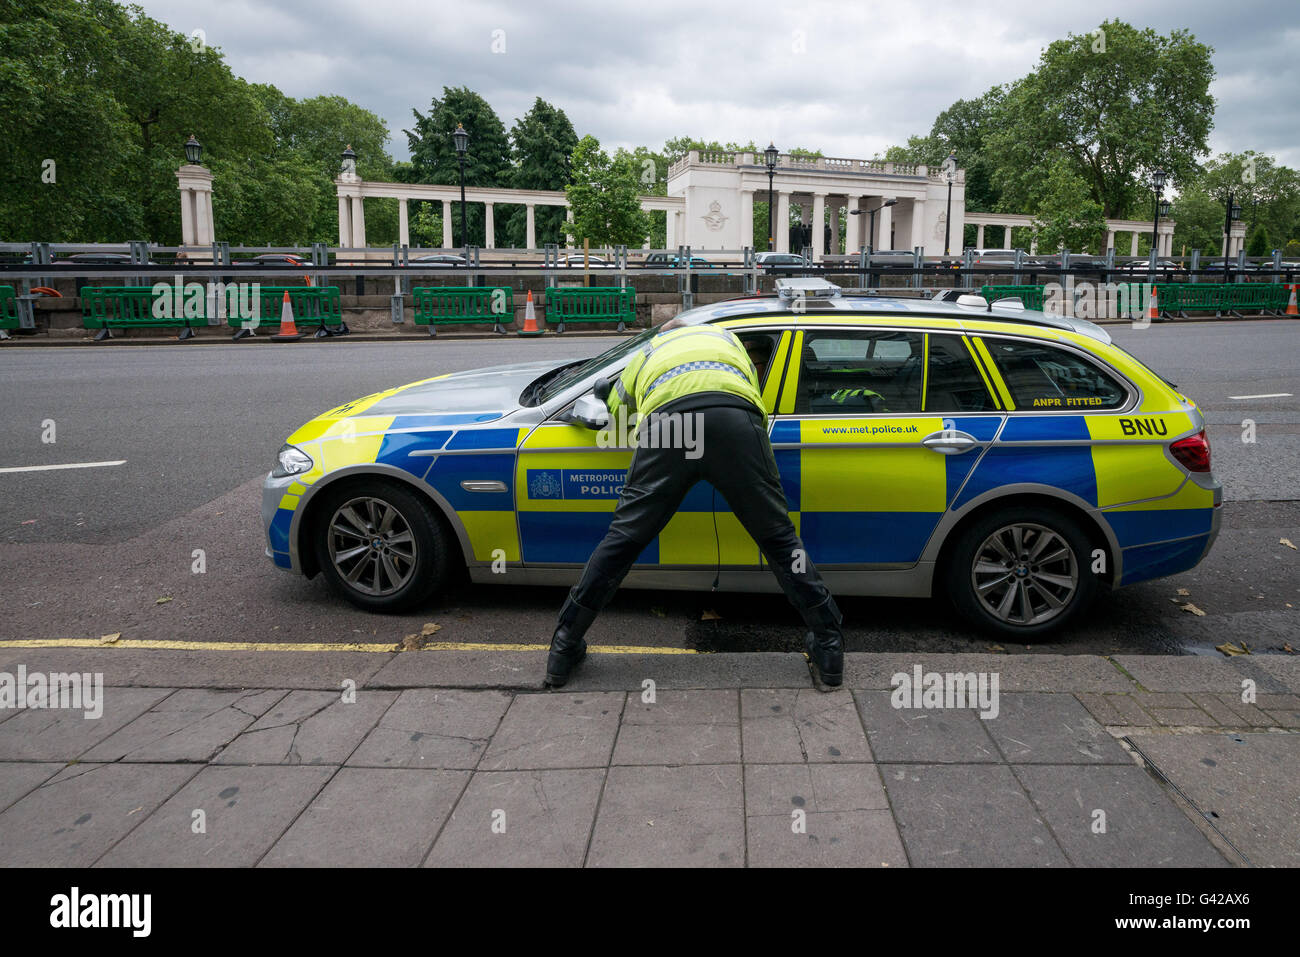 London, UK. 18th June, 2016. Police officer talking to his colleague in the car during the protest in London © Velar Stock Photo